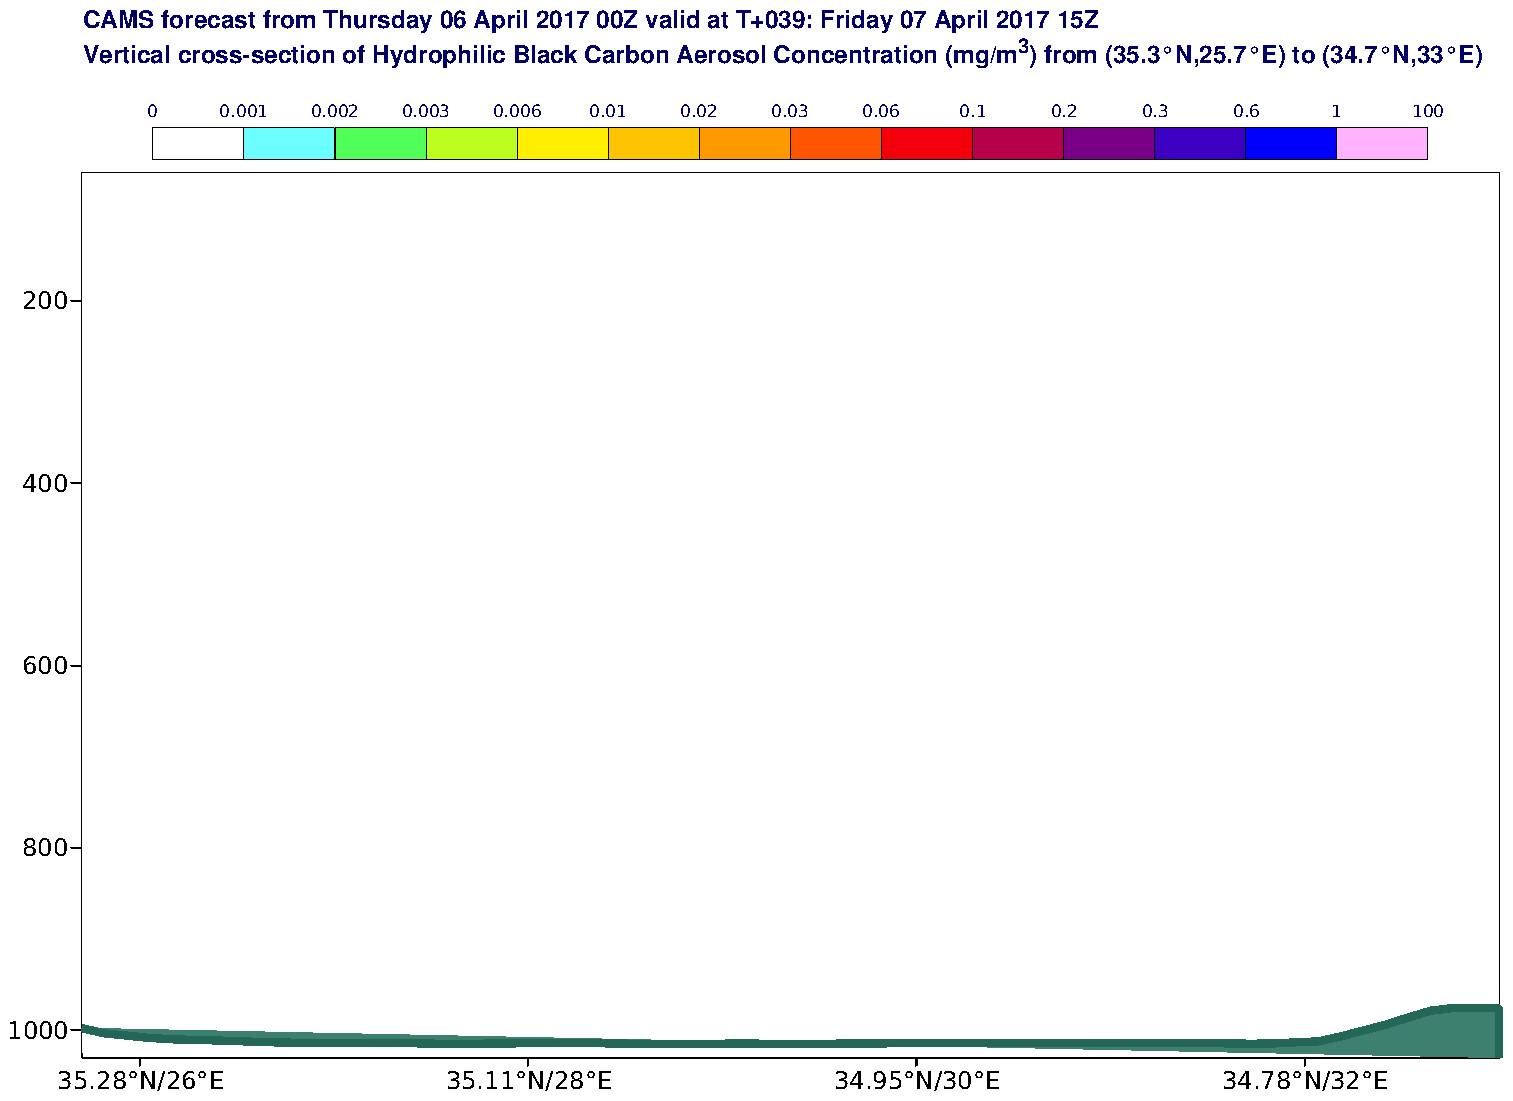 Vertical cross-section of Hydrophilic Black Carbon Aerosol Concentration (mg/m3) valid at T39 - 2017-04-07 15:00